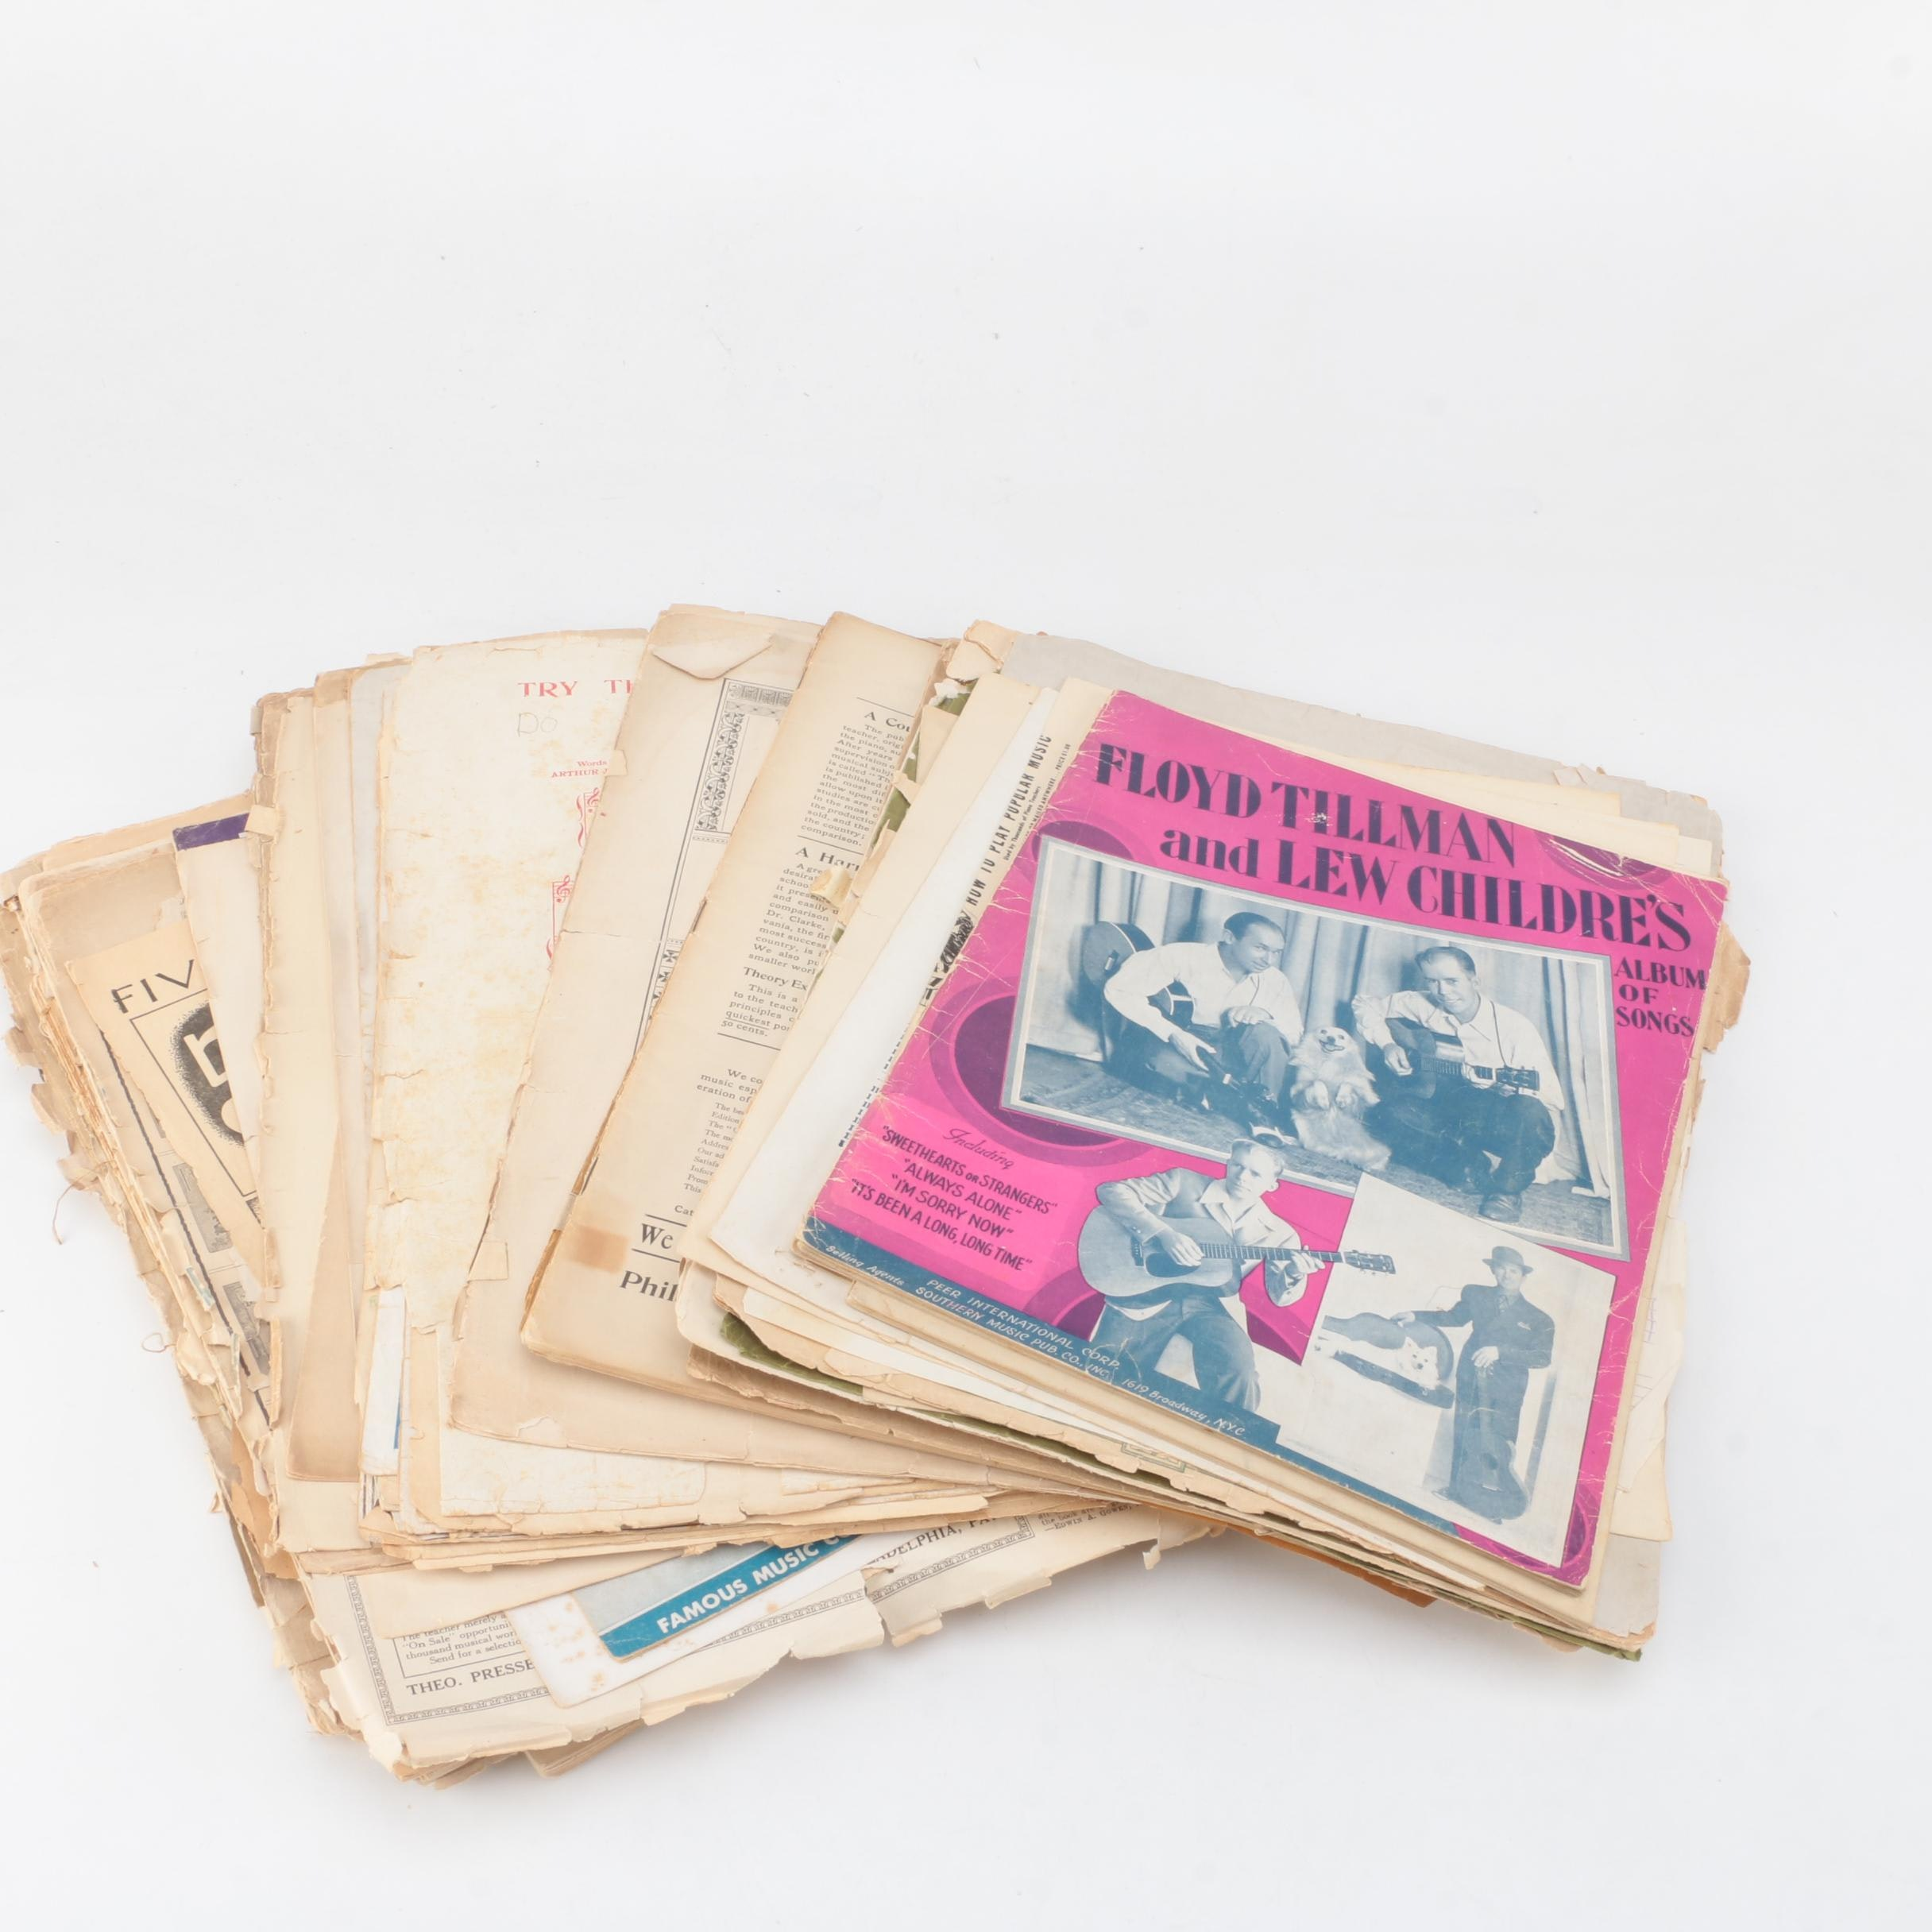 """Collection of Vintage Sheet Music Including """"Floyd Tillman and Lew Childre"""""""